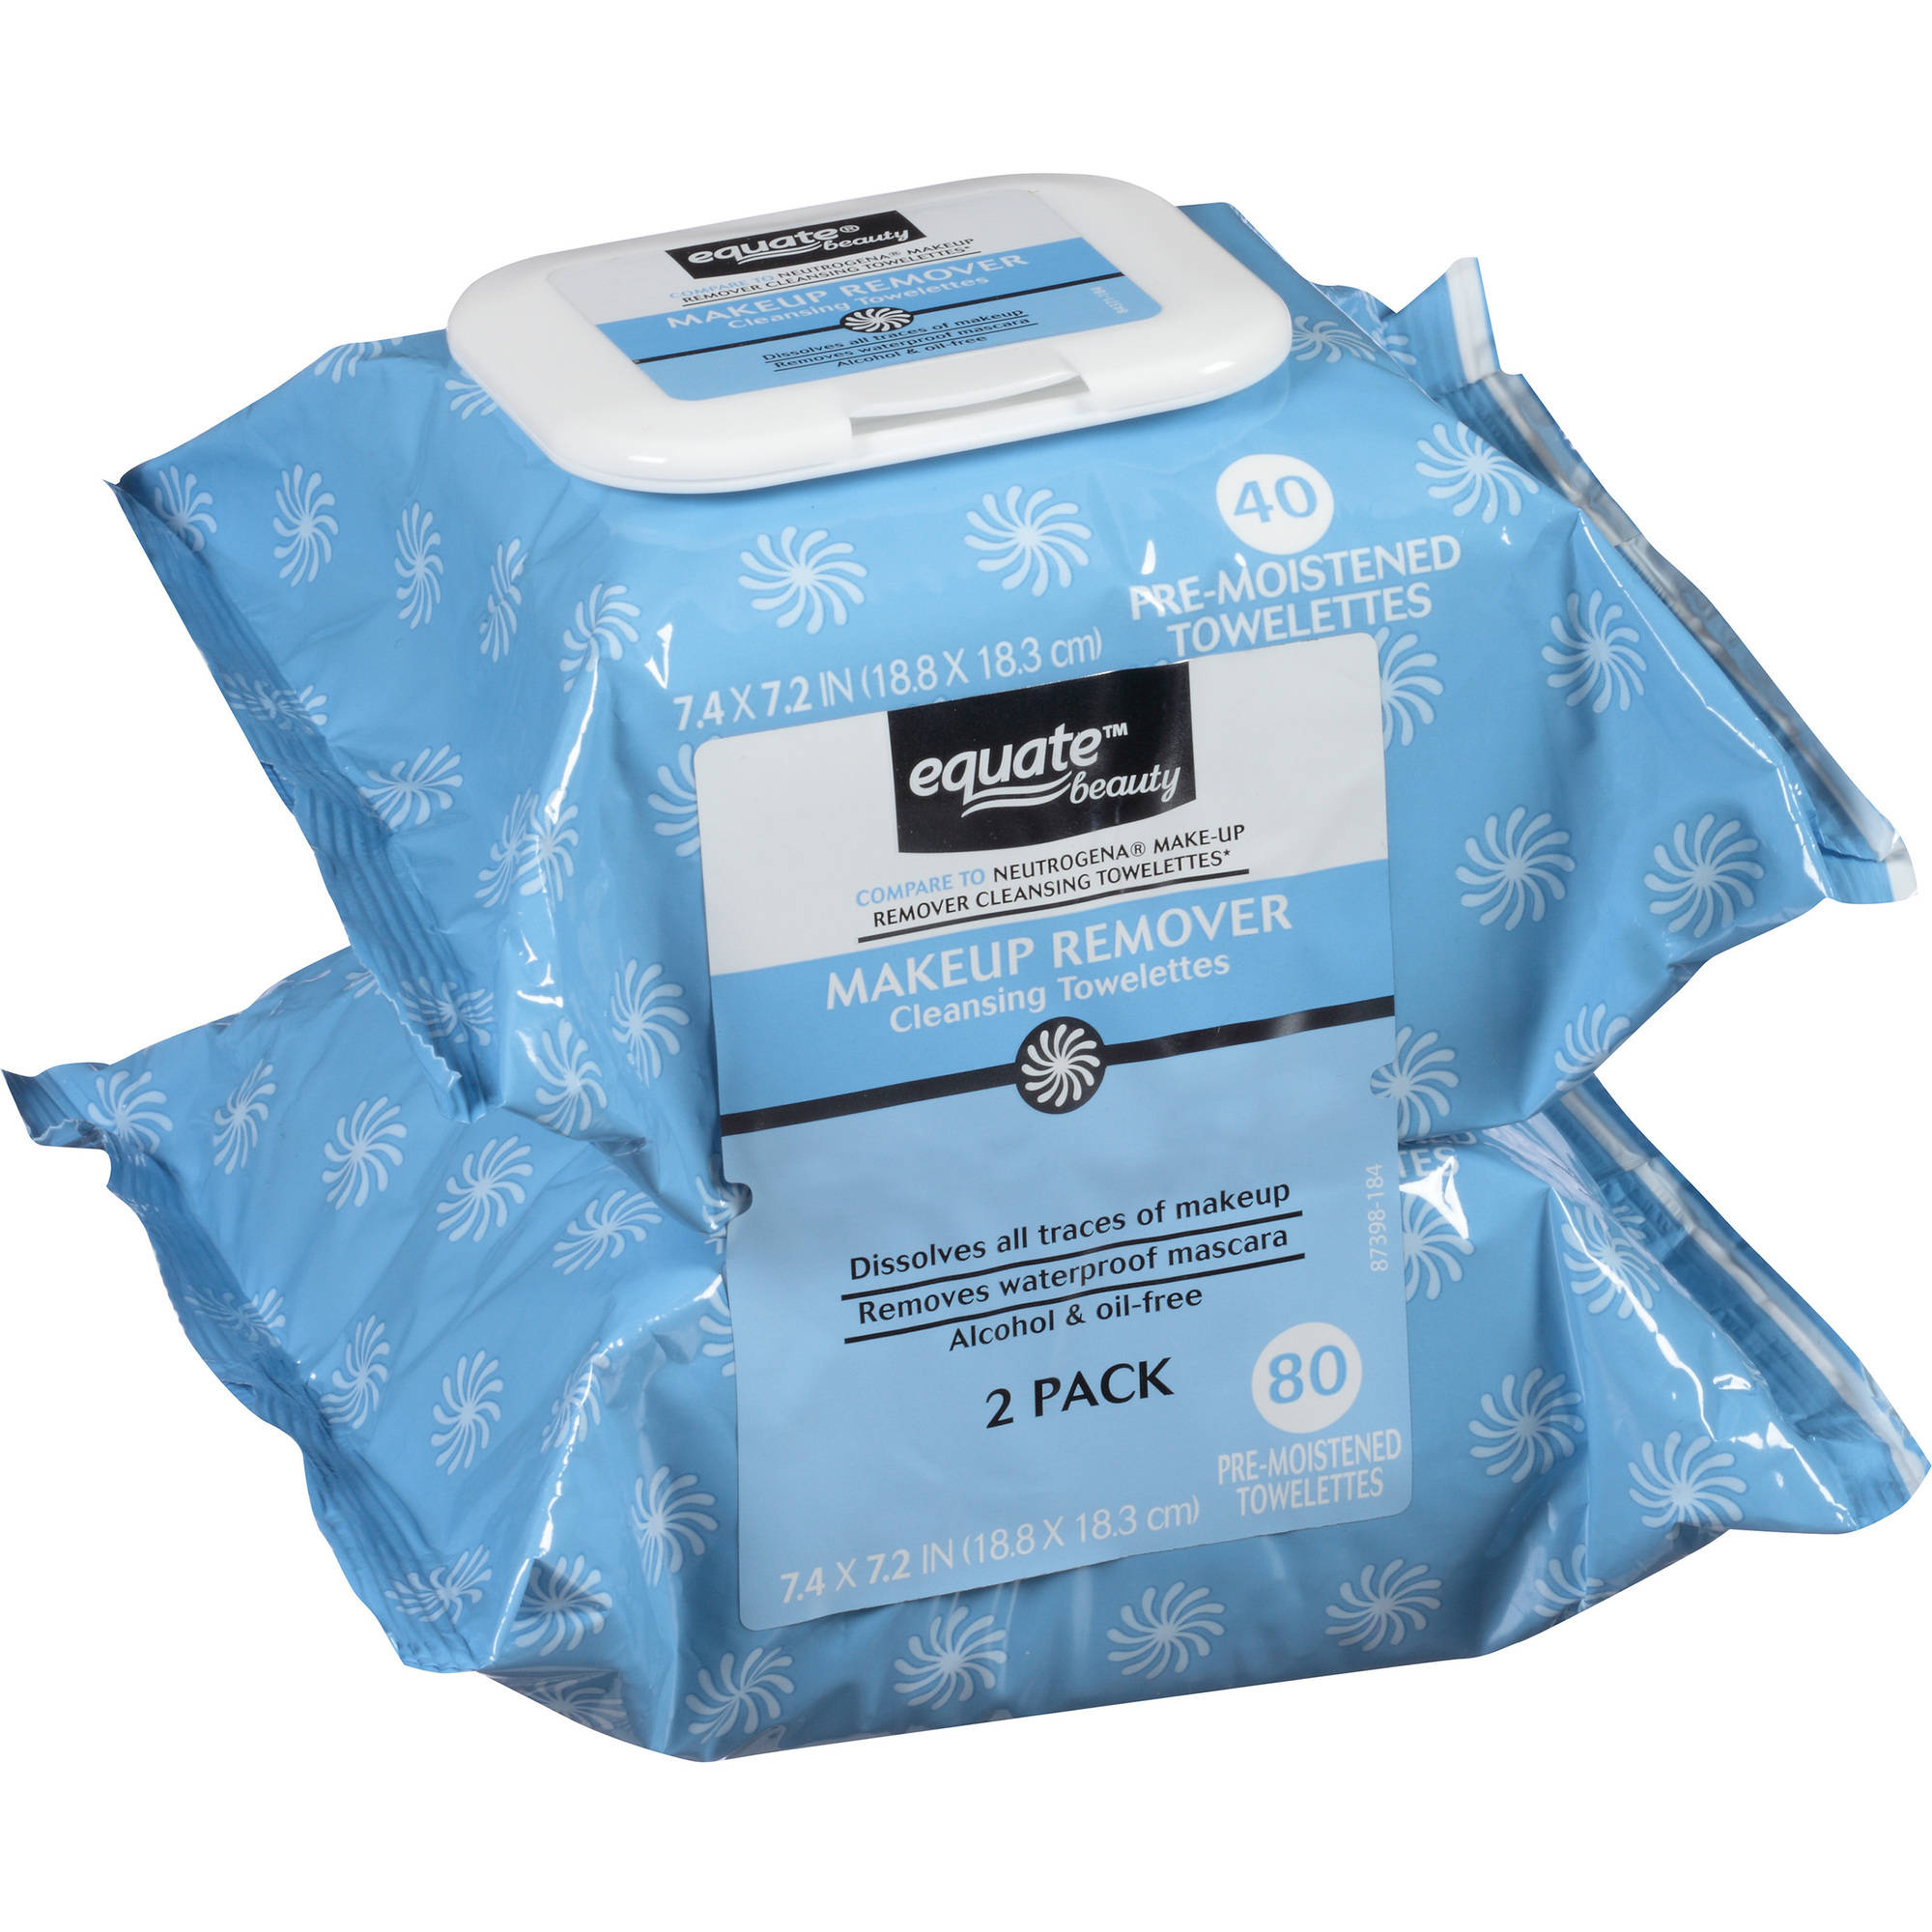 Equate Beauty Makeup Remover Cleansing Towelettes, 40 sheets, (Pack of 2)